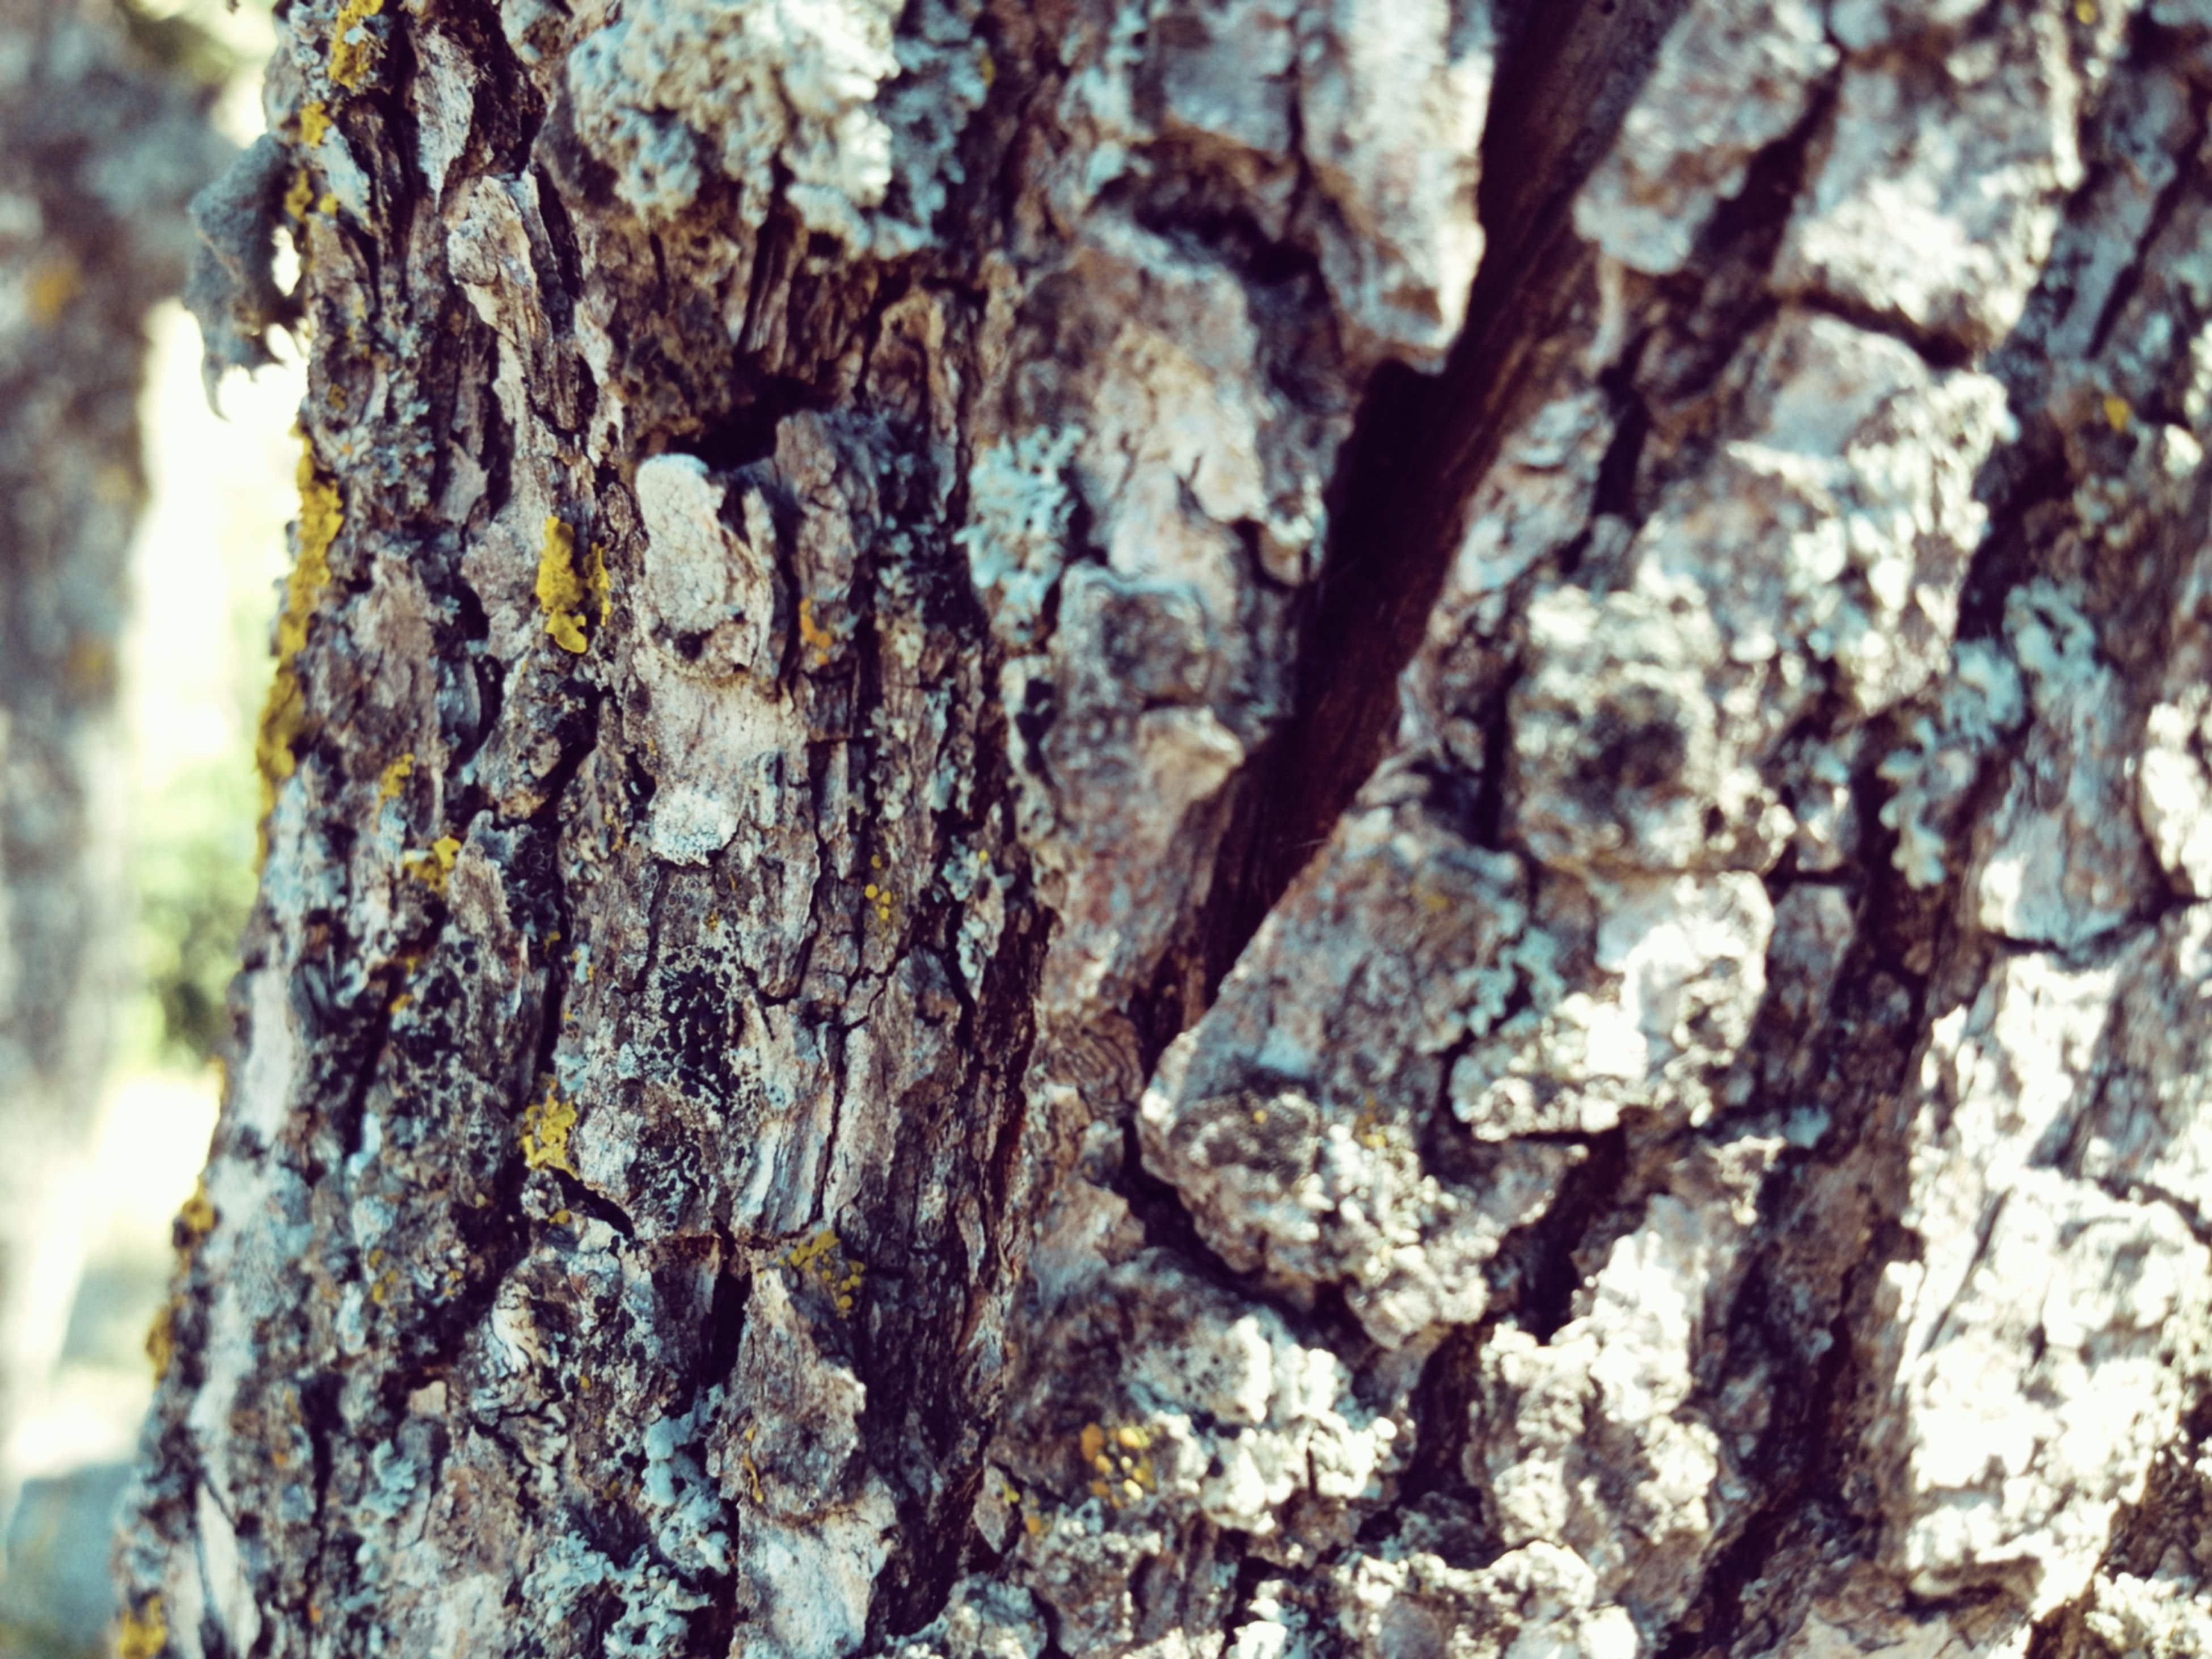 textured, tree trunk, rough, bark, tree, close-up, nature, full frame, focus on foreground, backgrounds, growth, natural pattern, selective focus, pattern, day, outdoors, moss, plant bark, detail, no people